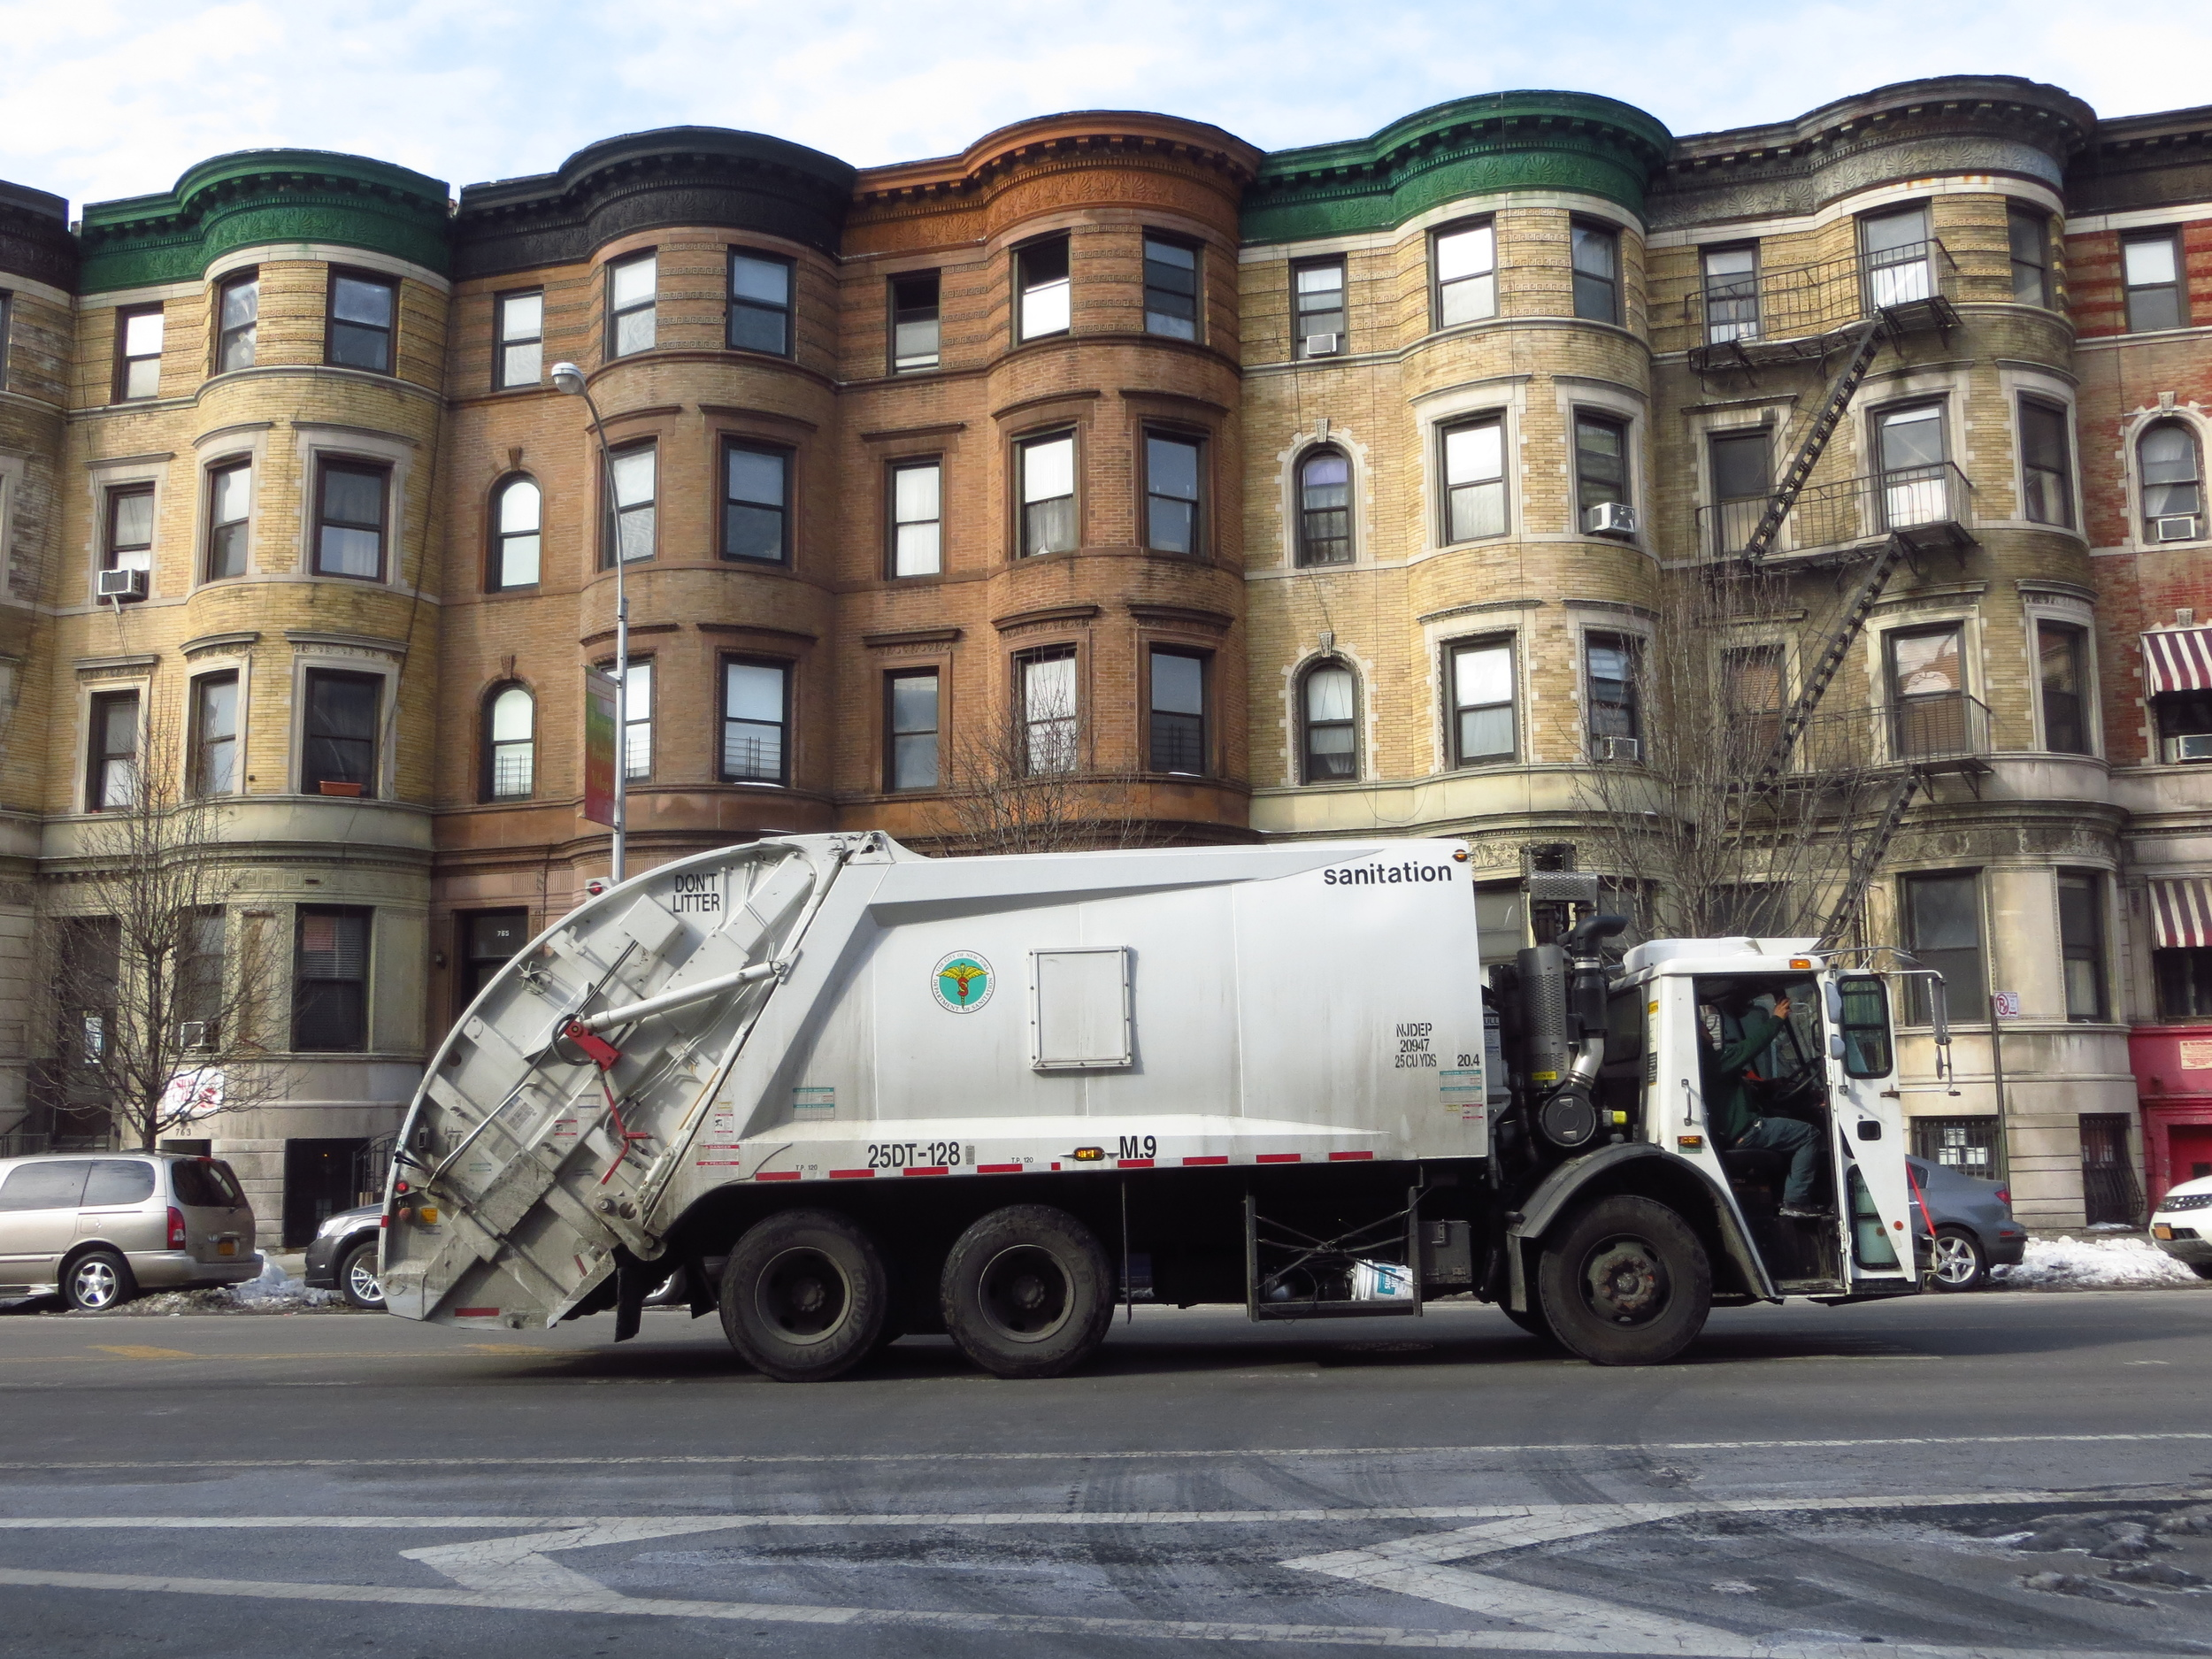 Portrait of a Garbage Truck